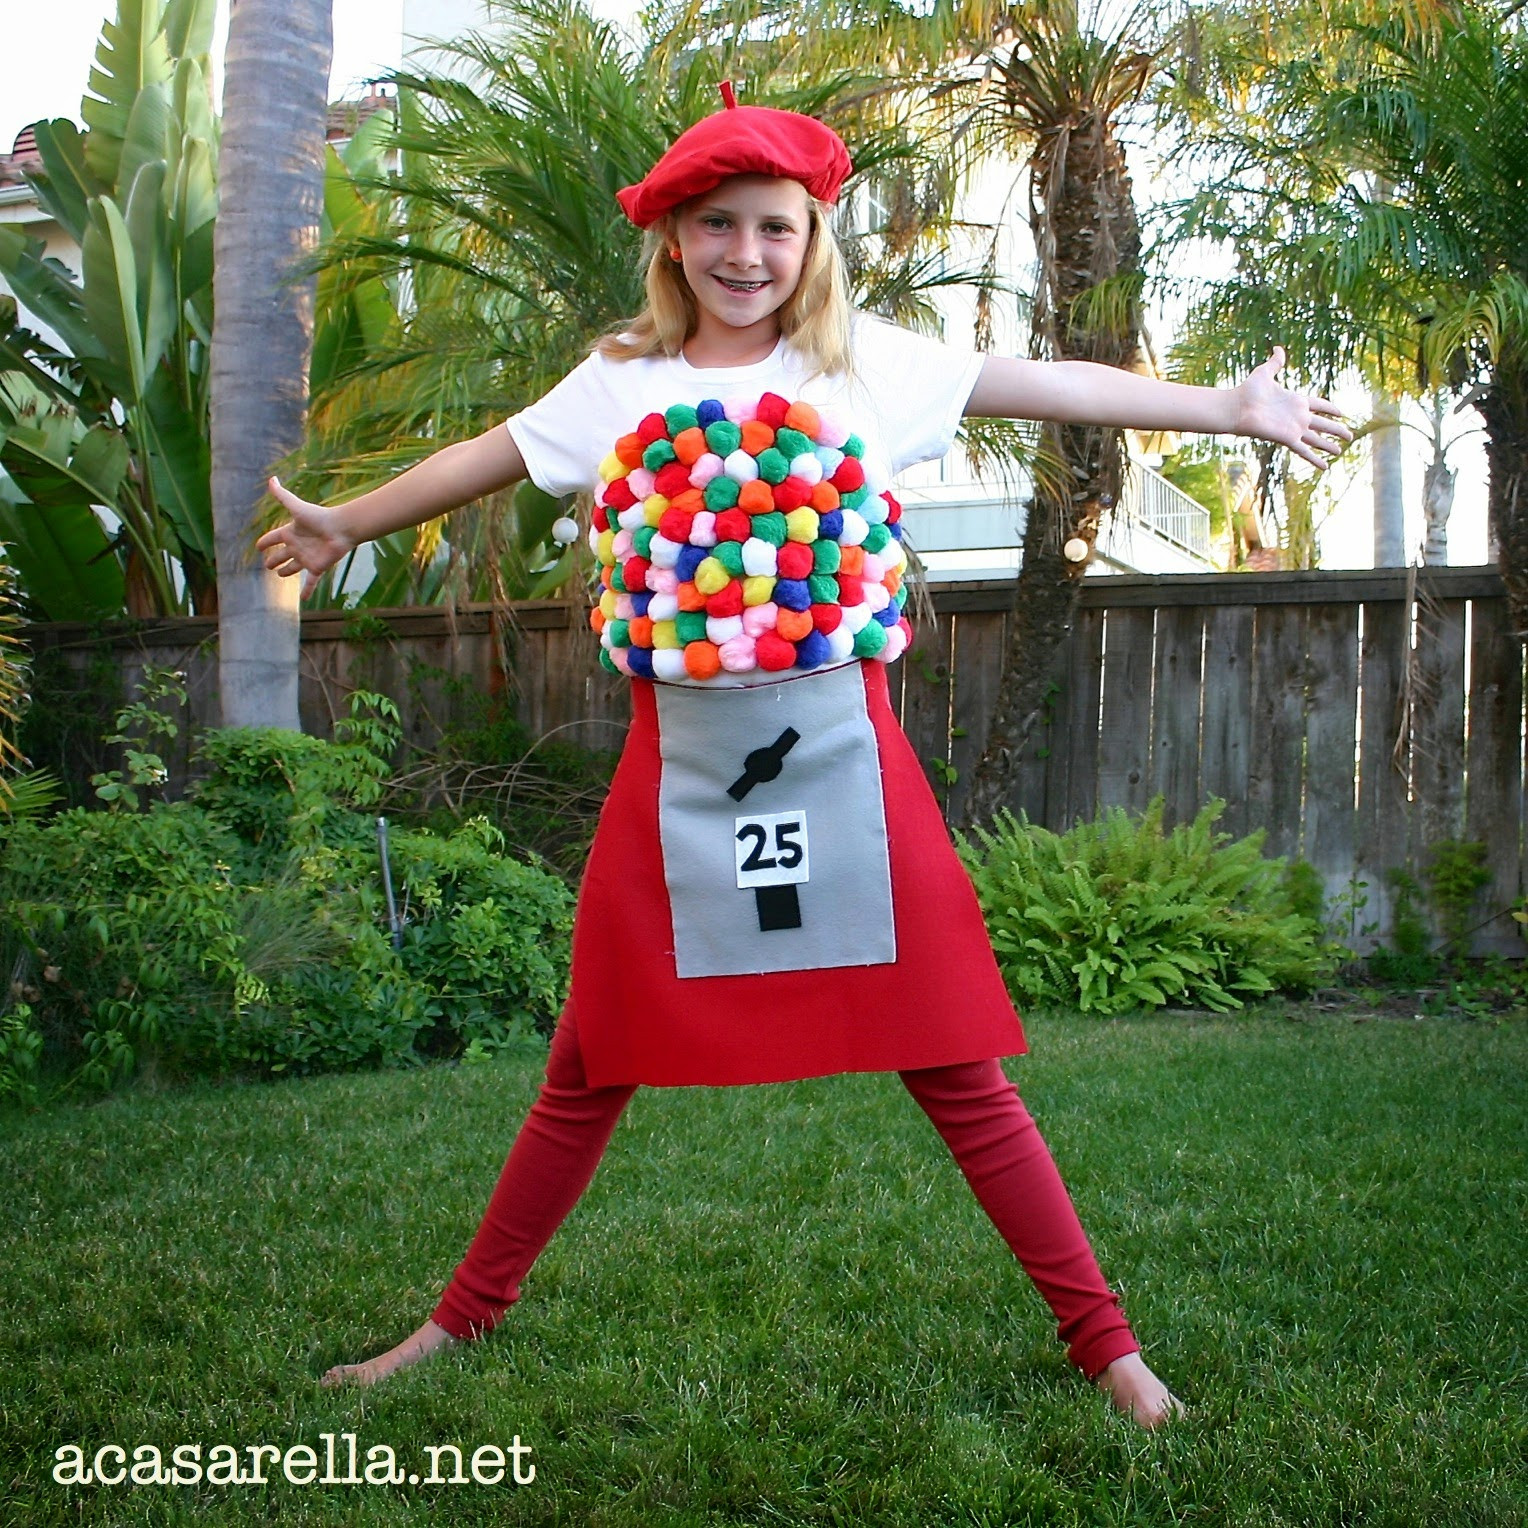 Best ideas about DIY Gumball Costume . Save or Pin Gumball Machine Halloween Costume Now.